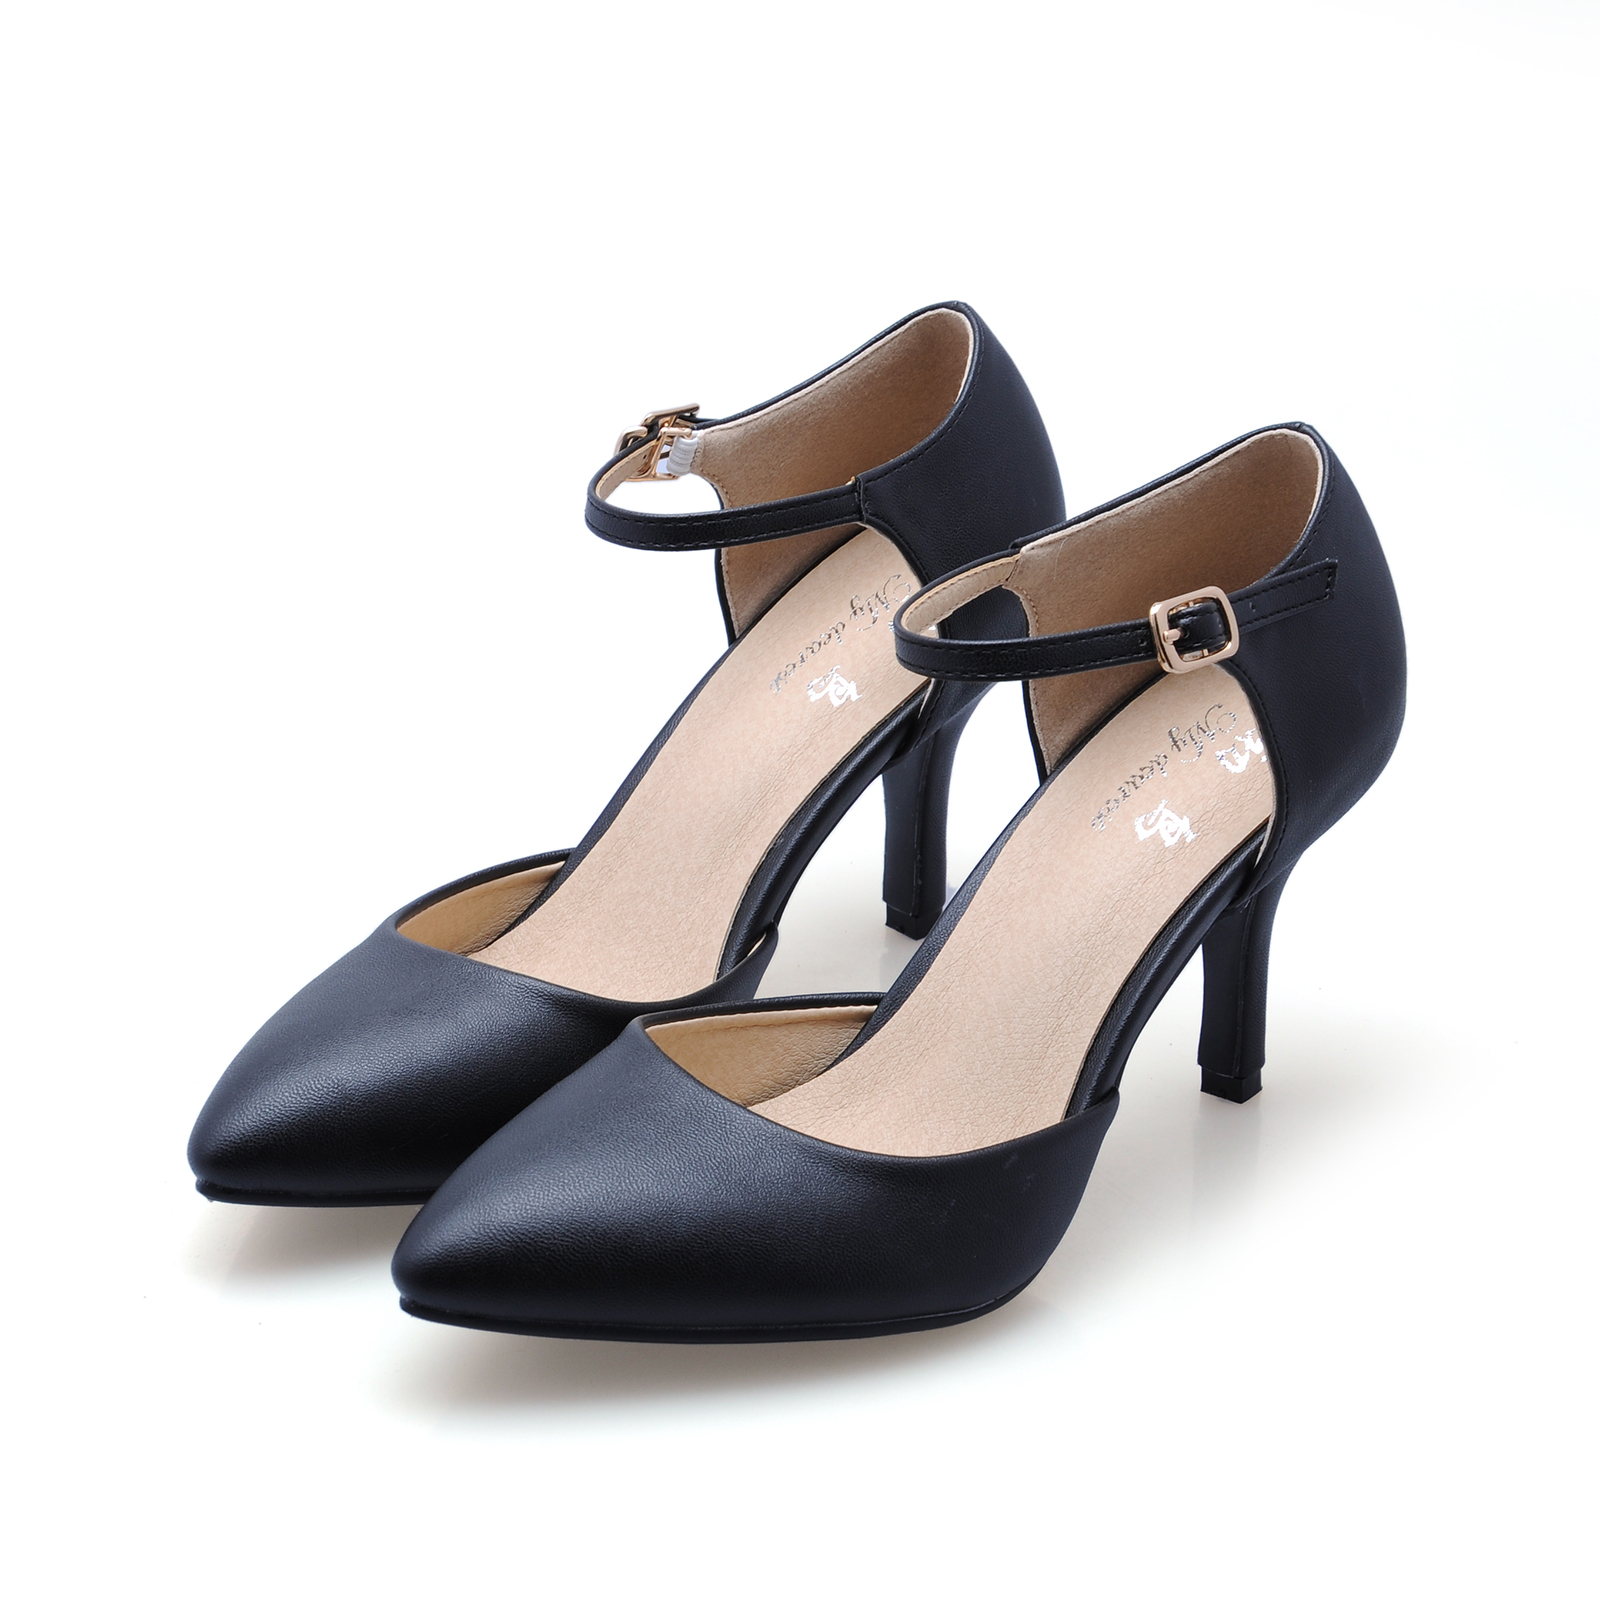 Women Pumps Shoes 2017 New Fashion Sexy Women Red Black White Wedding Shoes Pointed Toe Pumps Two Piece High Heels SMYCN-C0026<br><br>Aliexpress